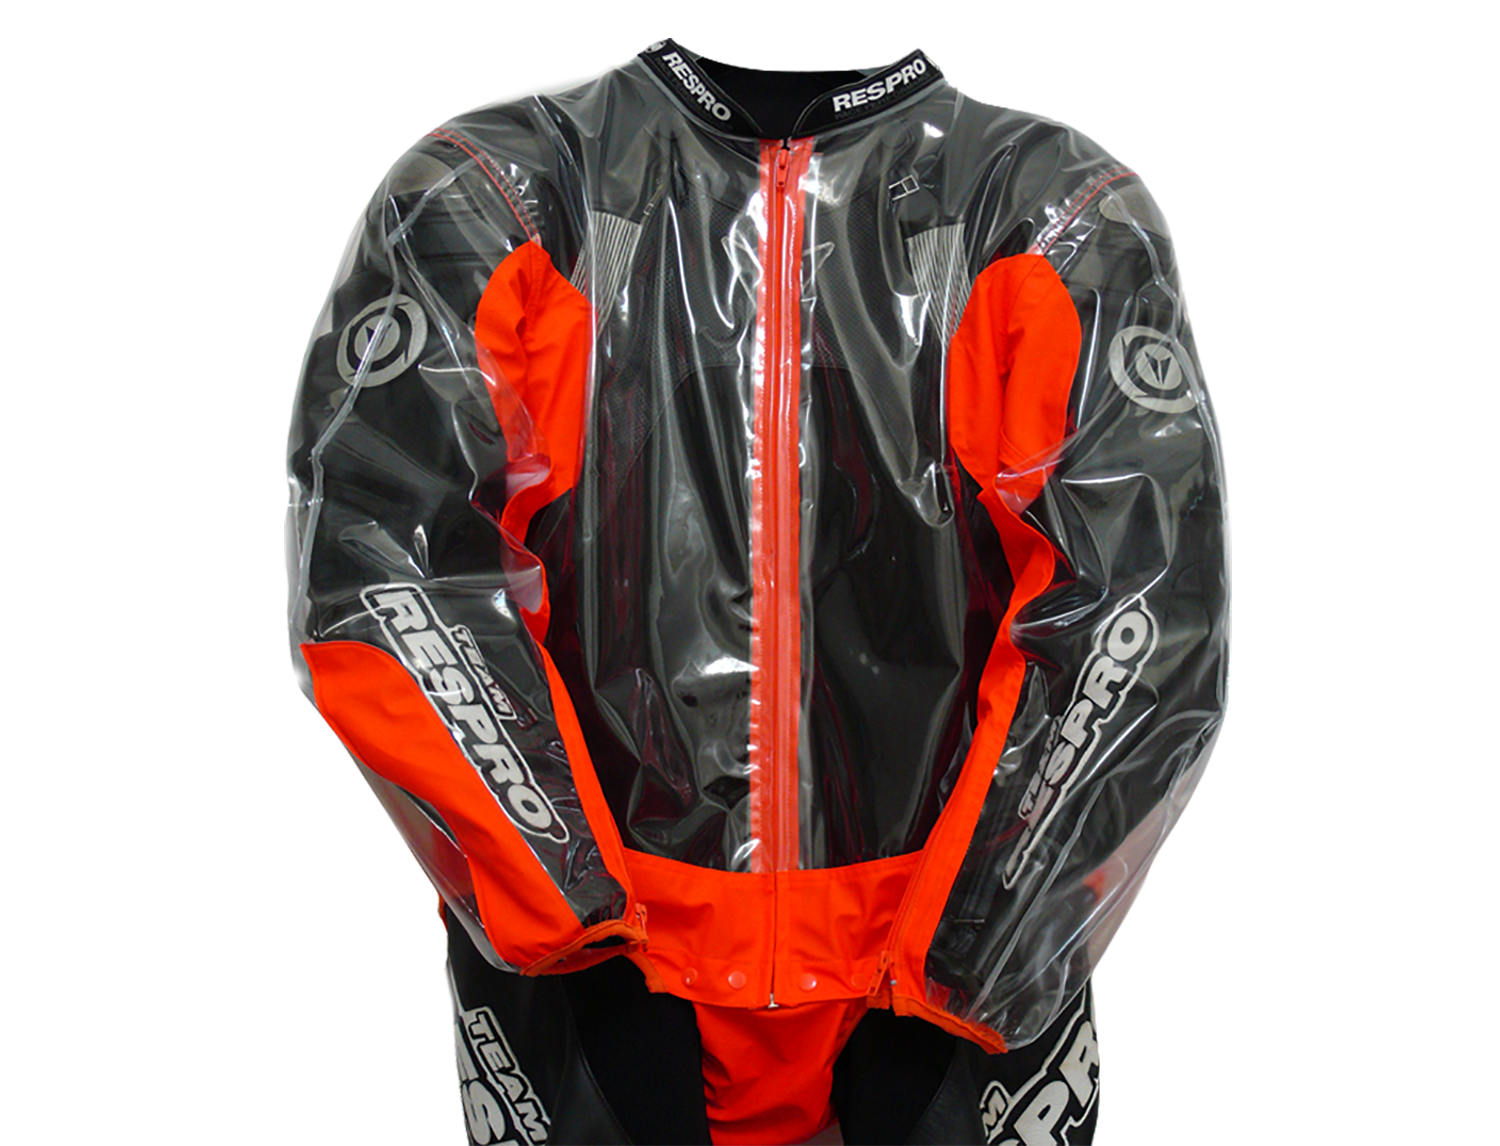 Clear Slick Wetsuit - Product